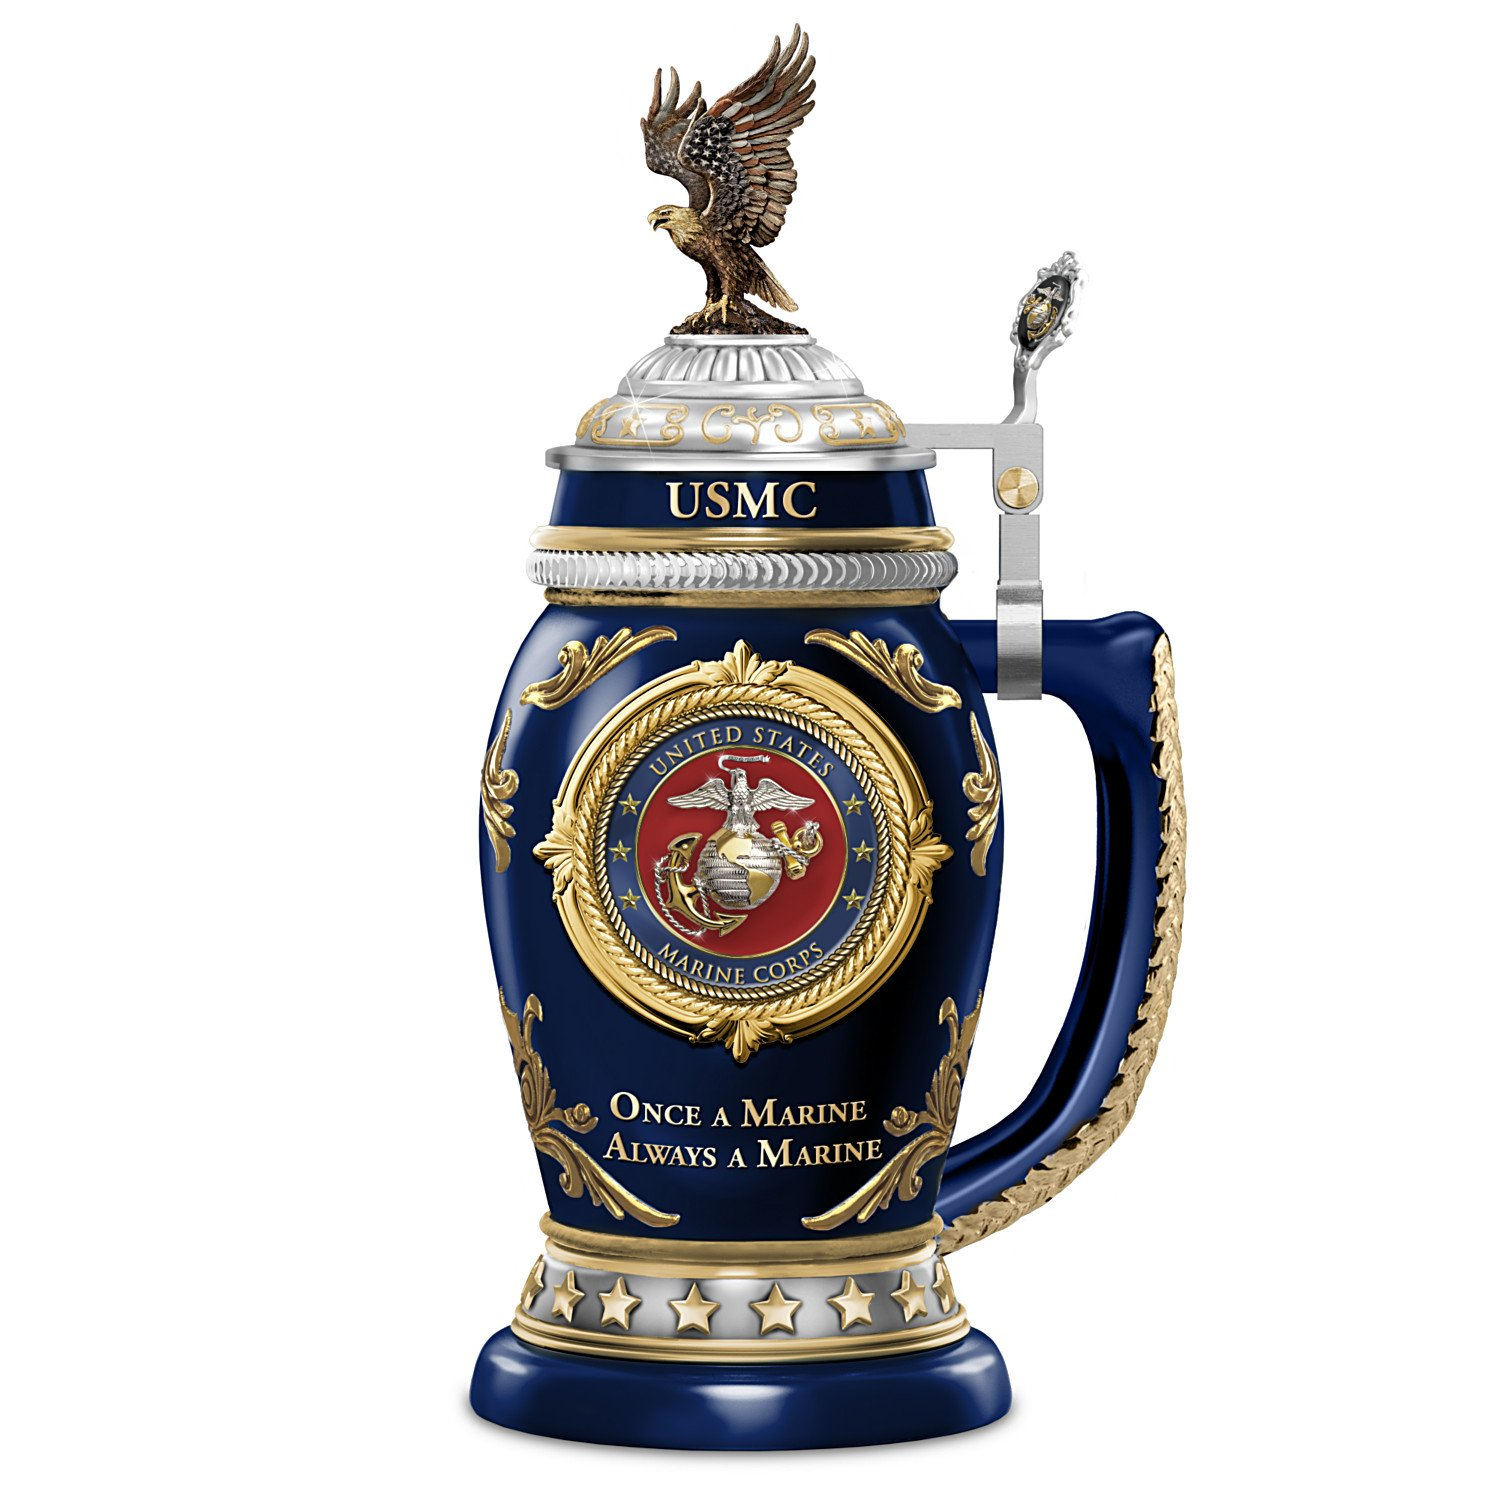 United States Marine Corps Collectible Heirloom Porcelain Stein with 22K Gold by The Bradford Exchange